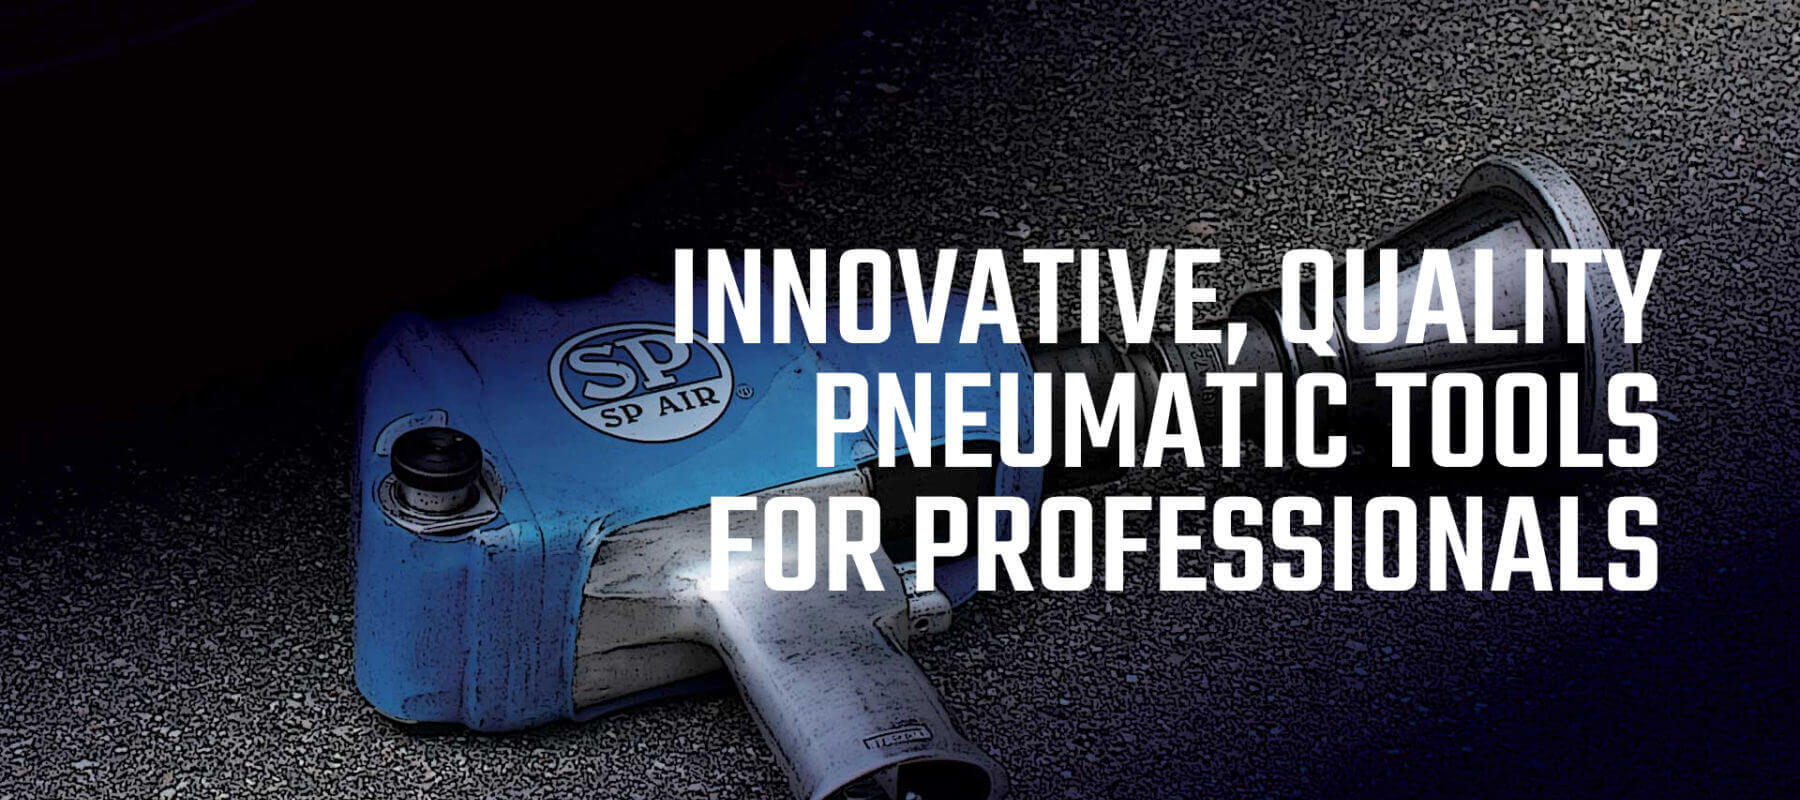 Innovative, Quality Pneumatic Tools For Professionals